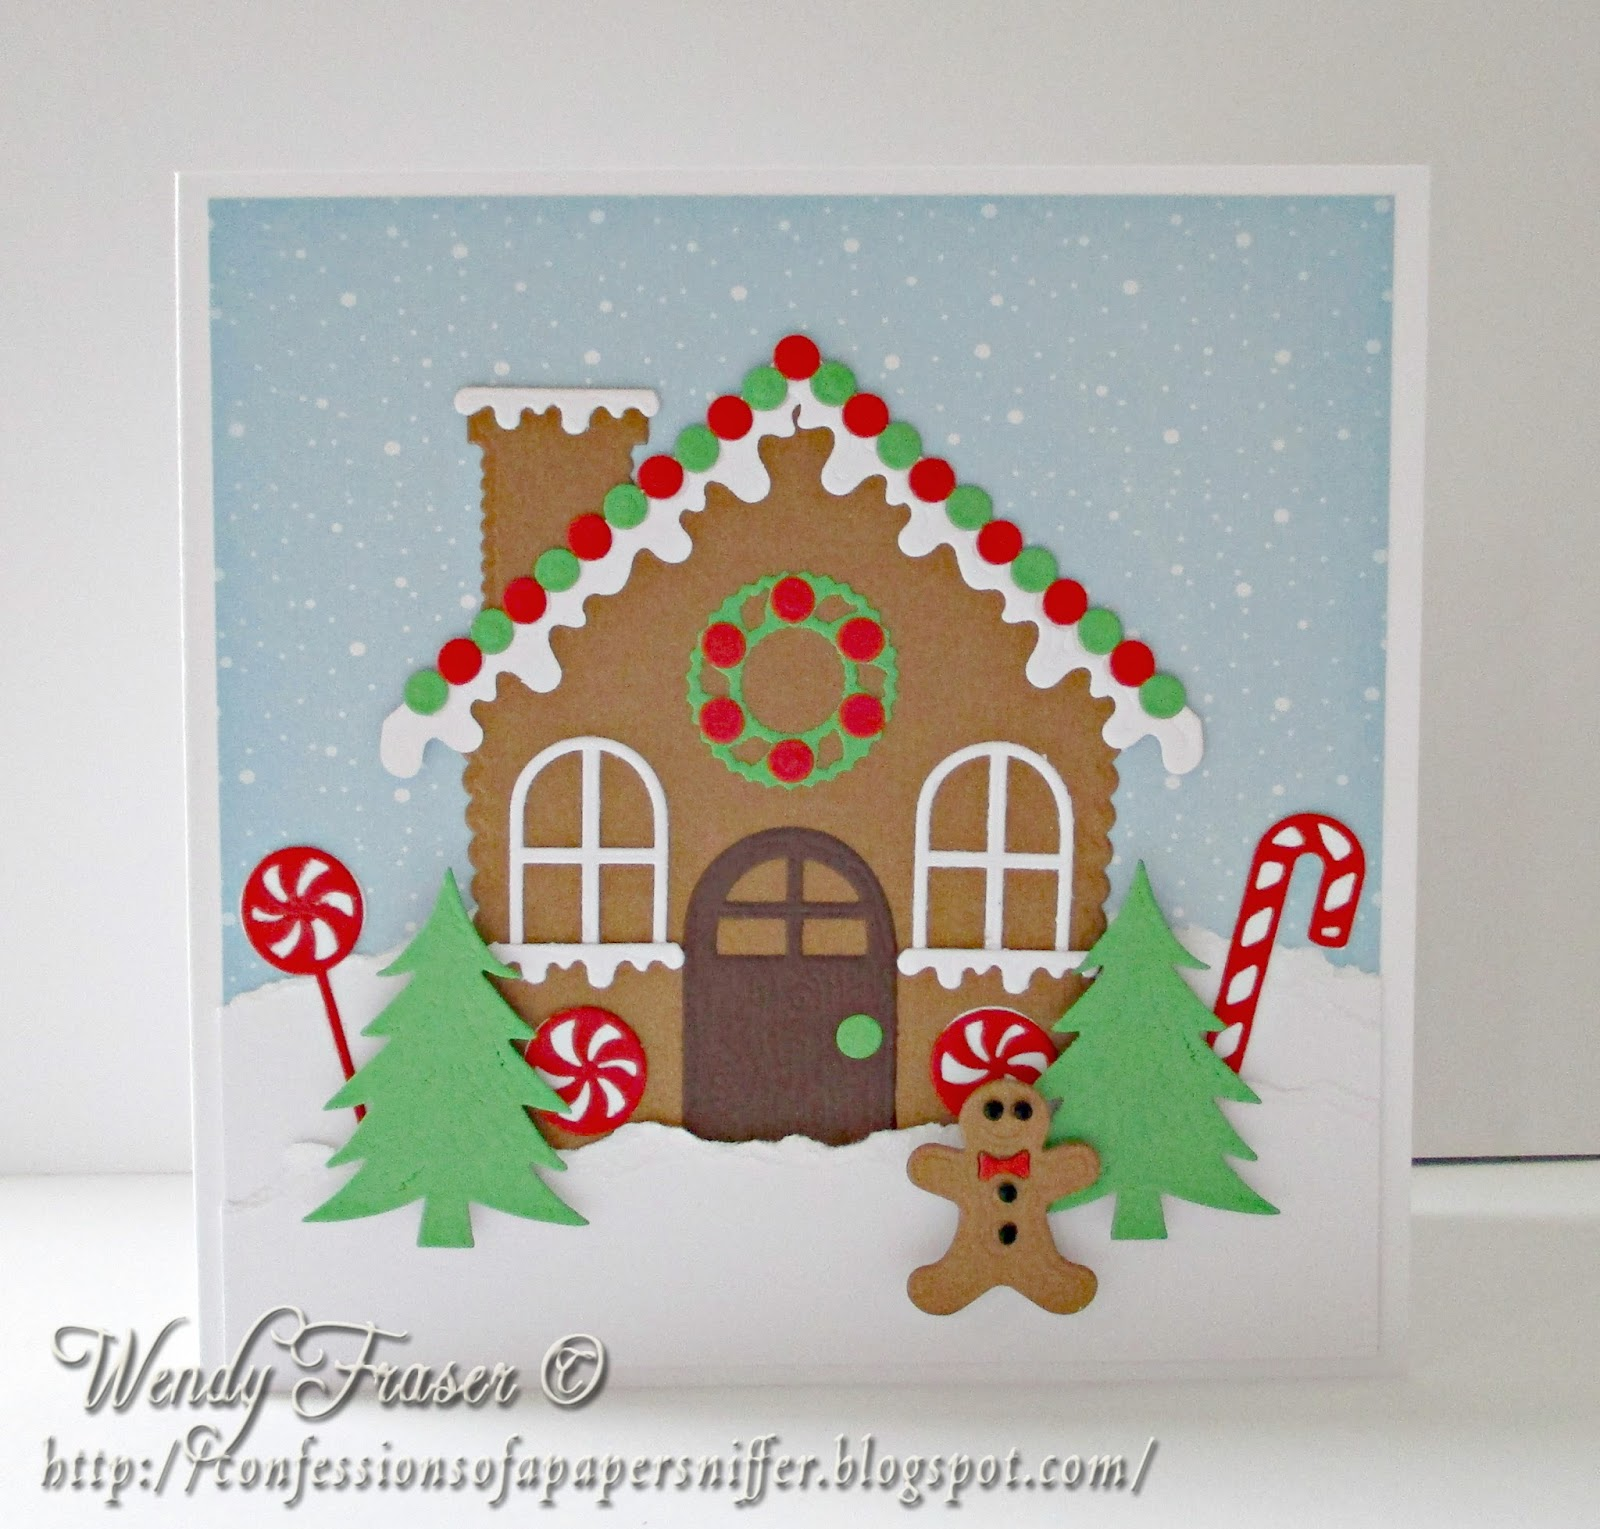 Confessions Of A Papersniffer: Gingerbread Scene